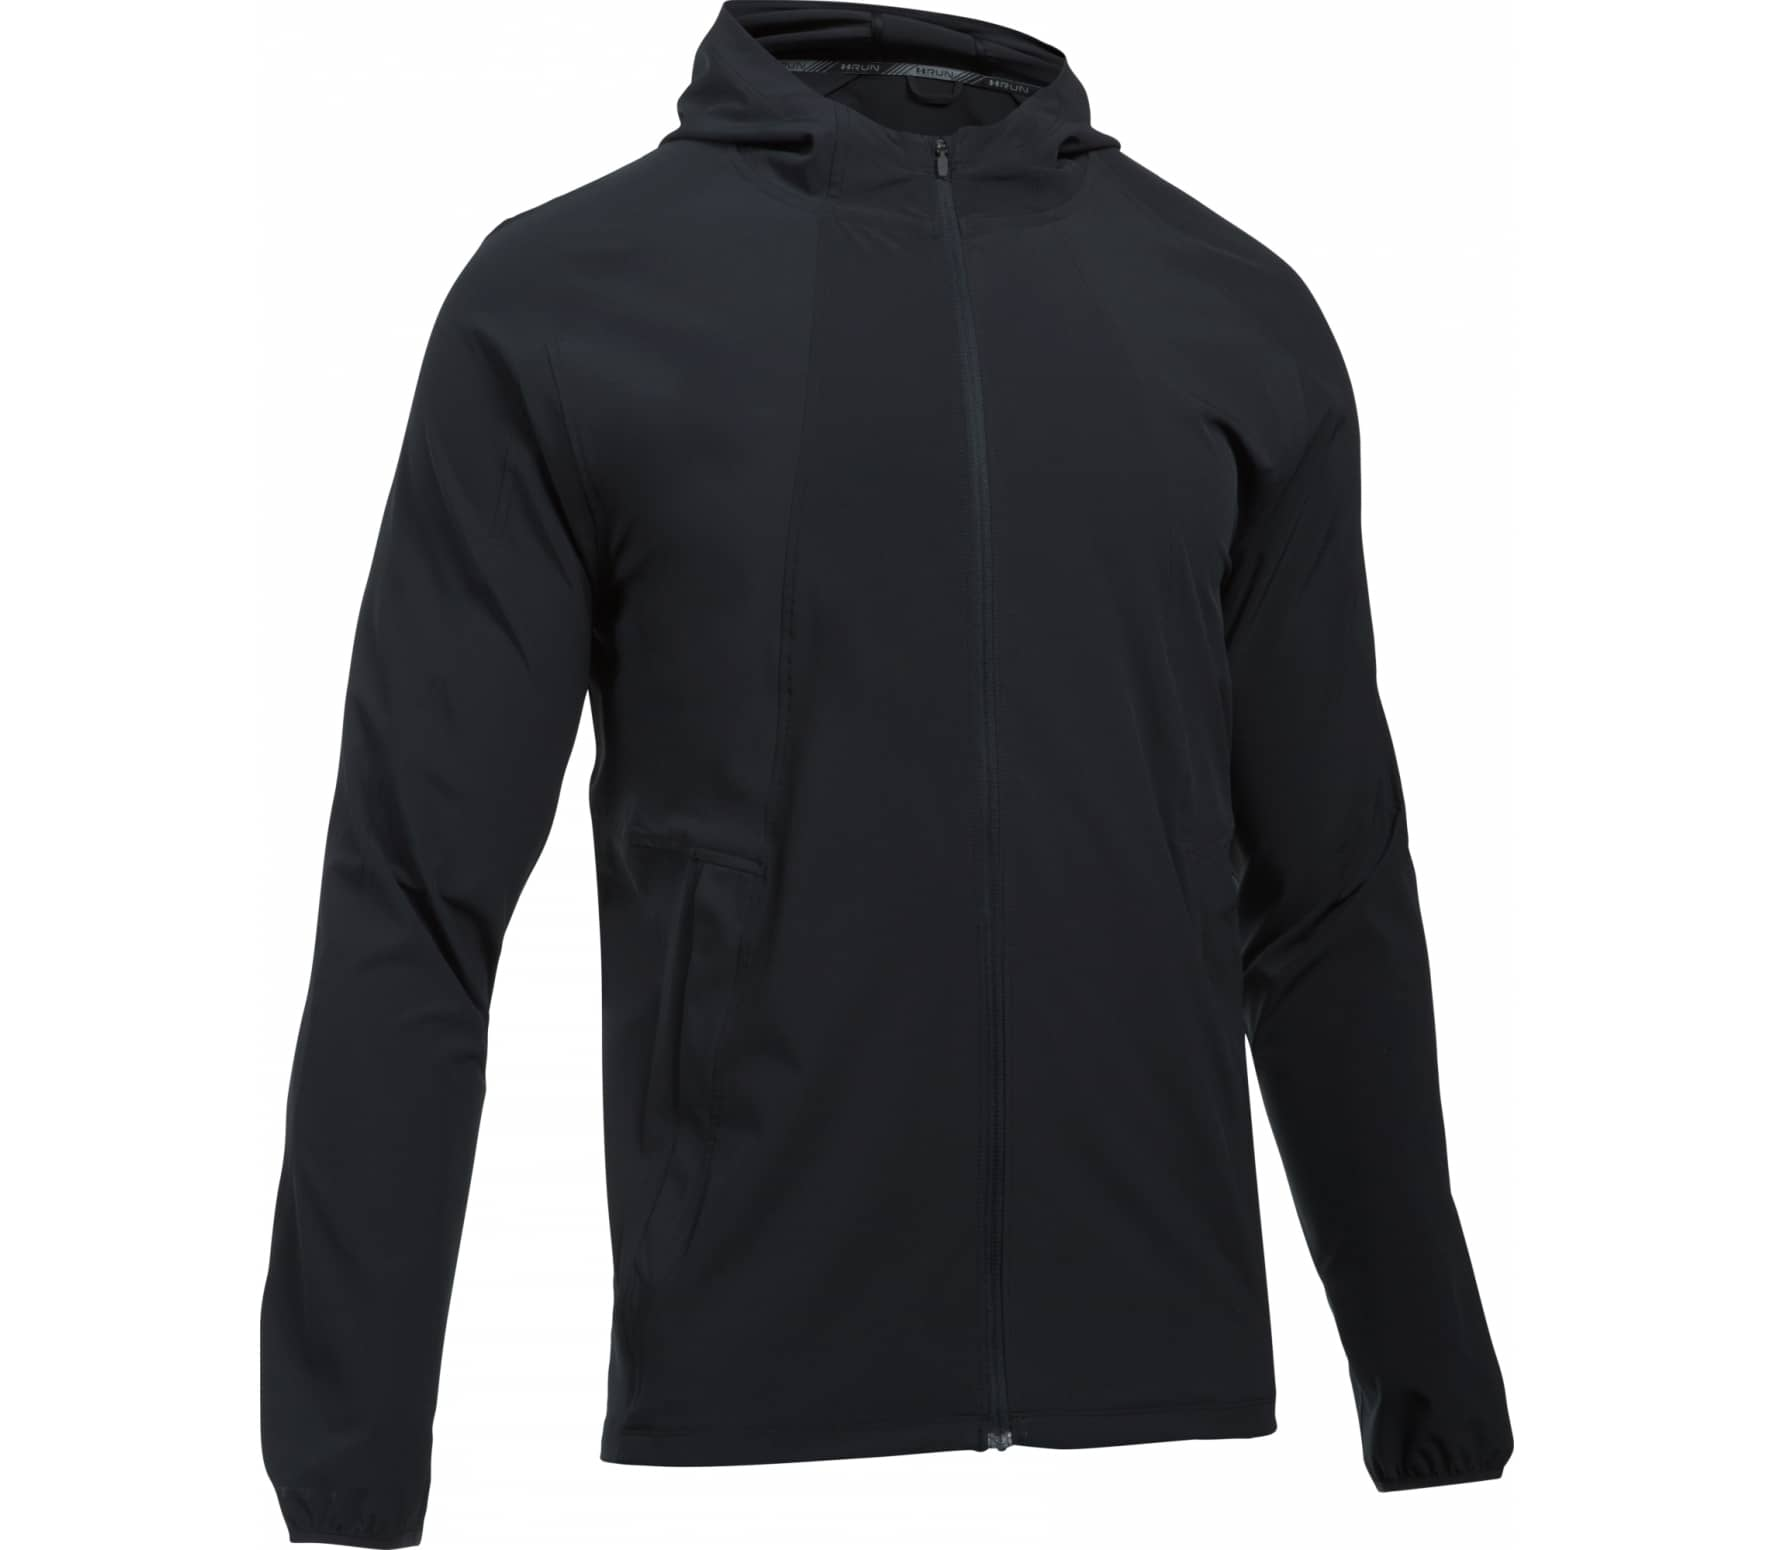 Under Armour - Outrun The Storm men's running jacket (black) - S thumbnail